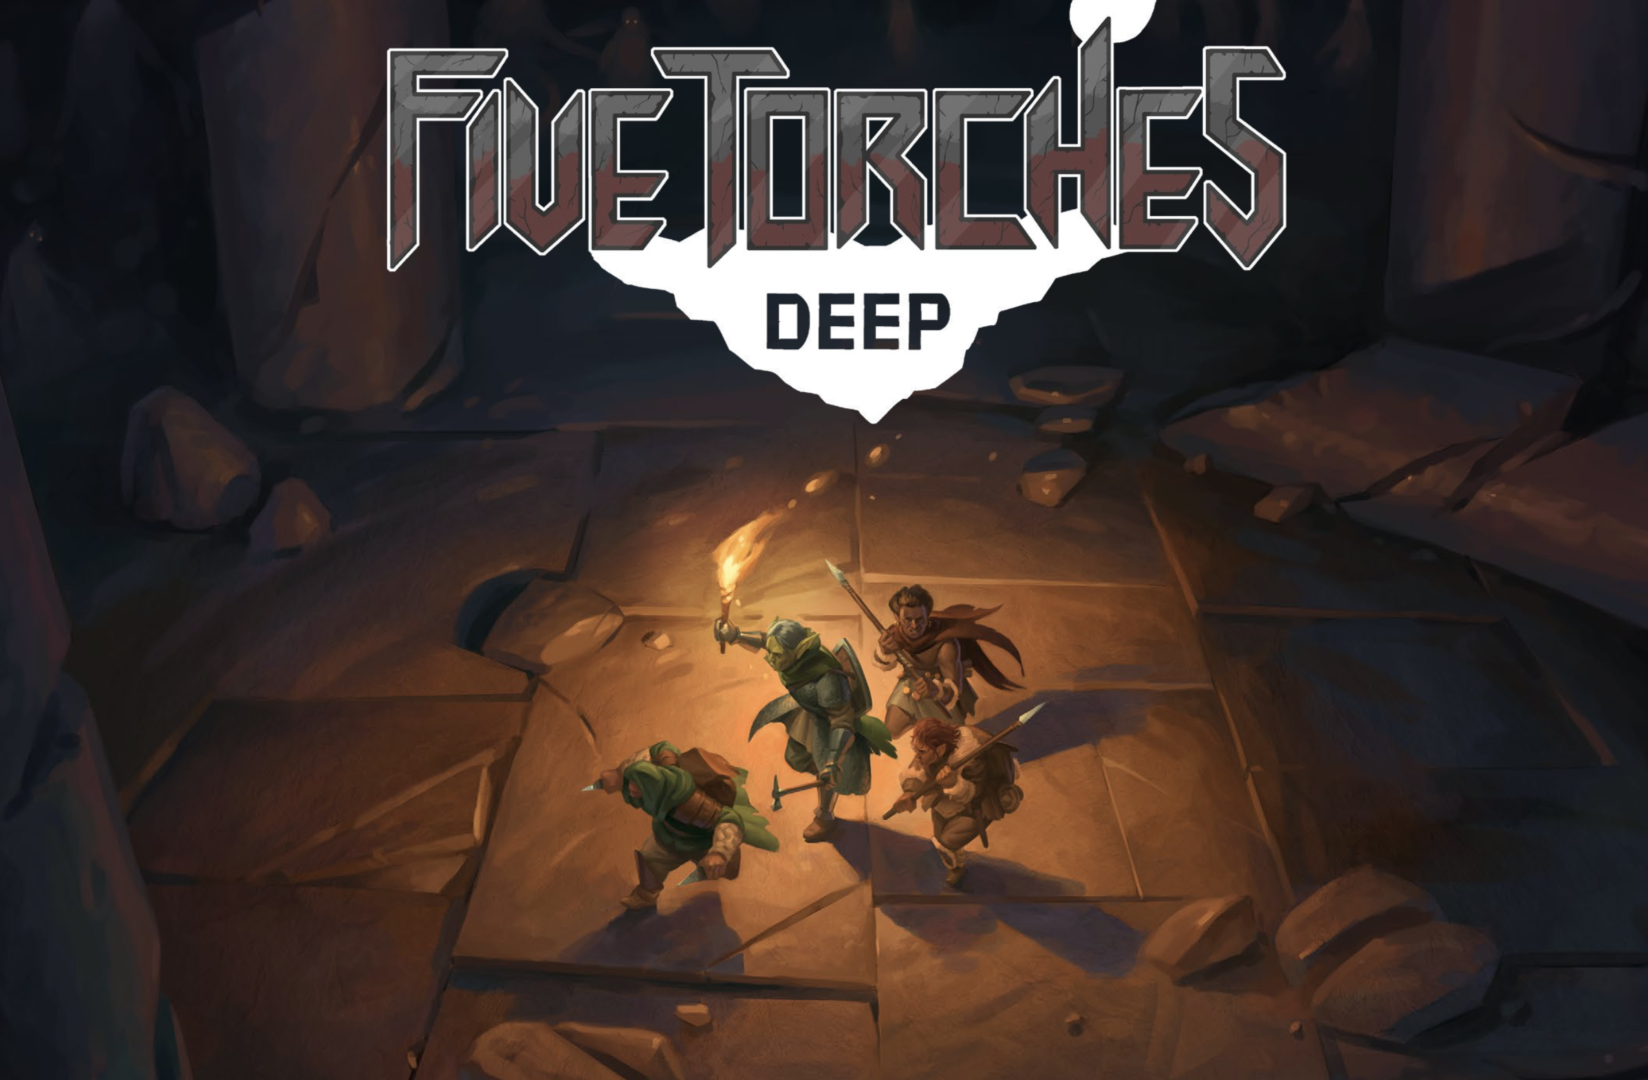 images/posts/FTD_cover.png